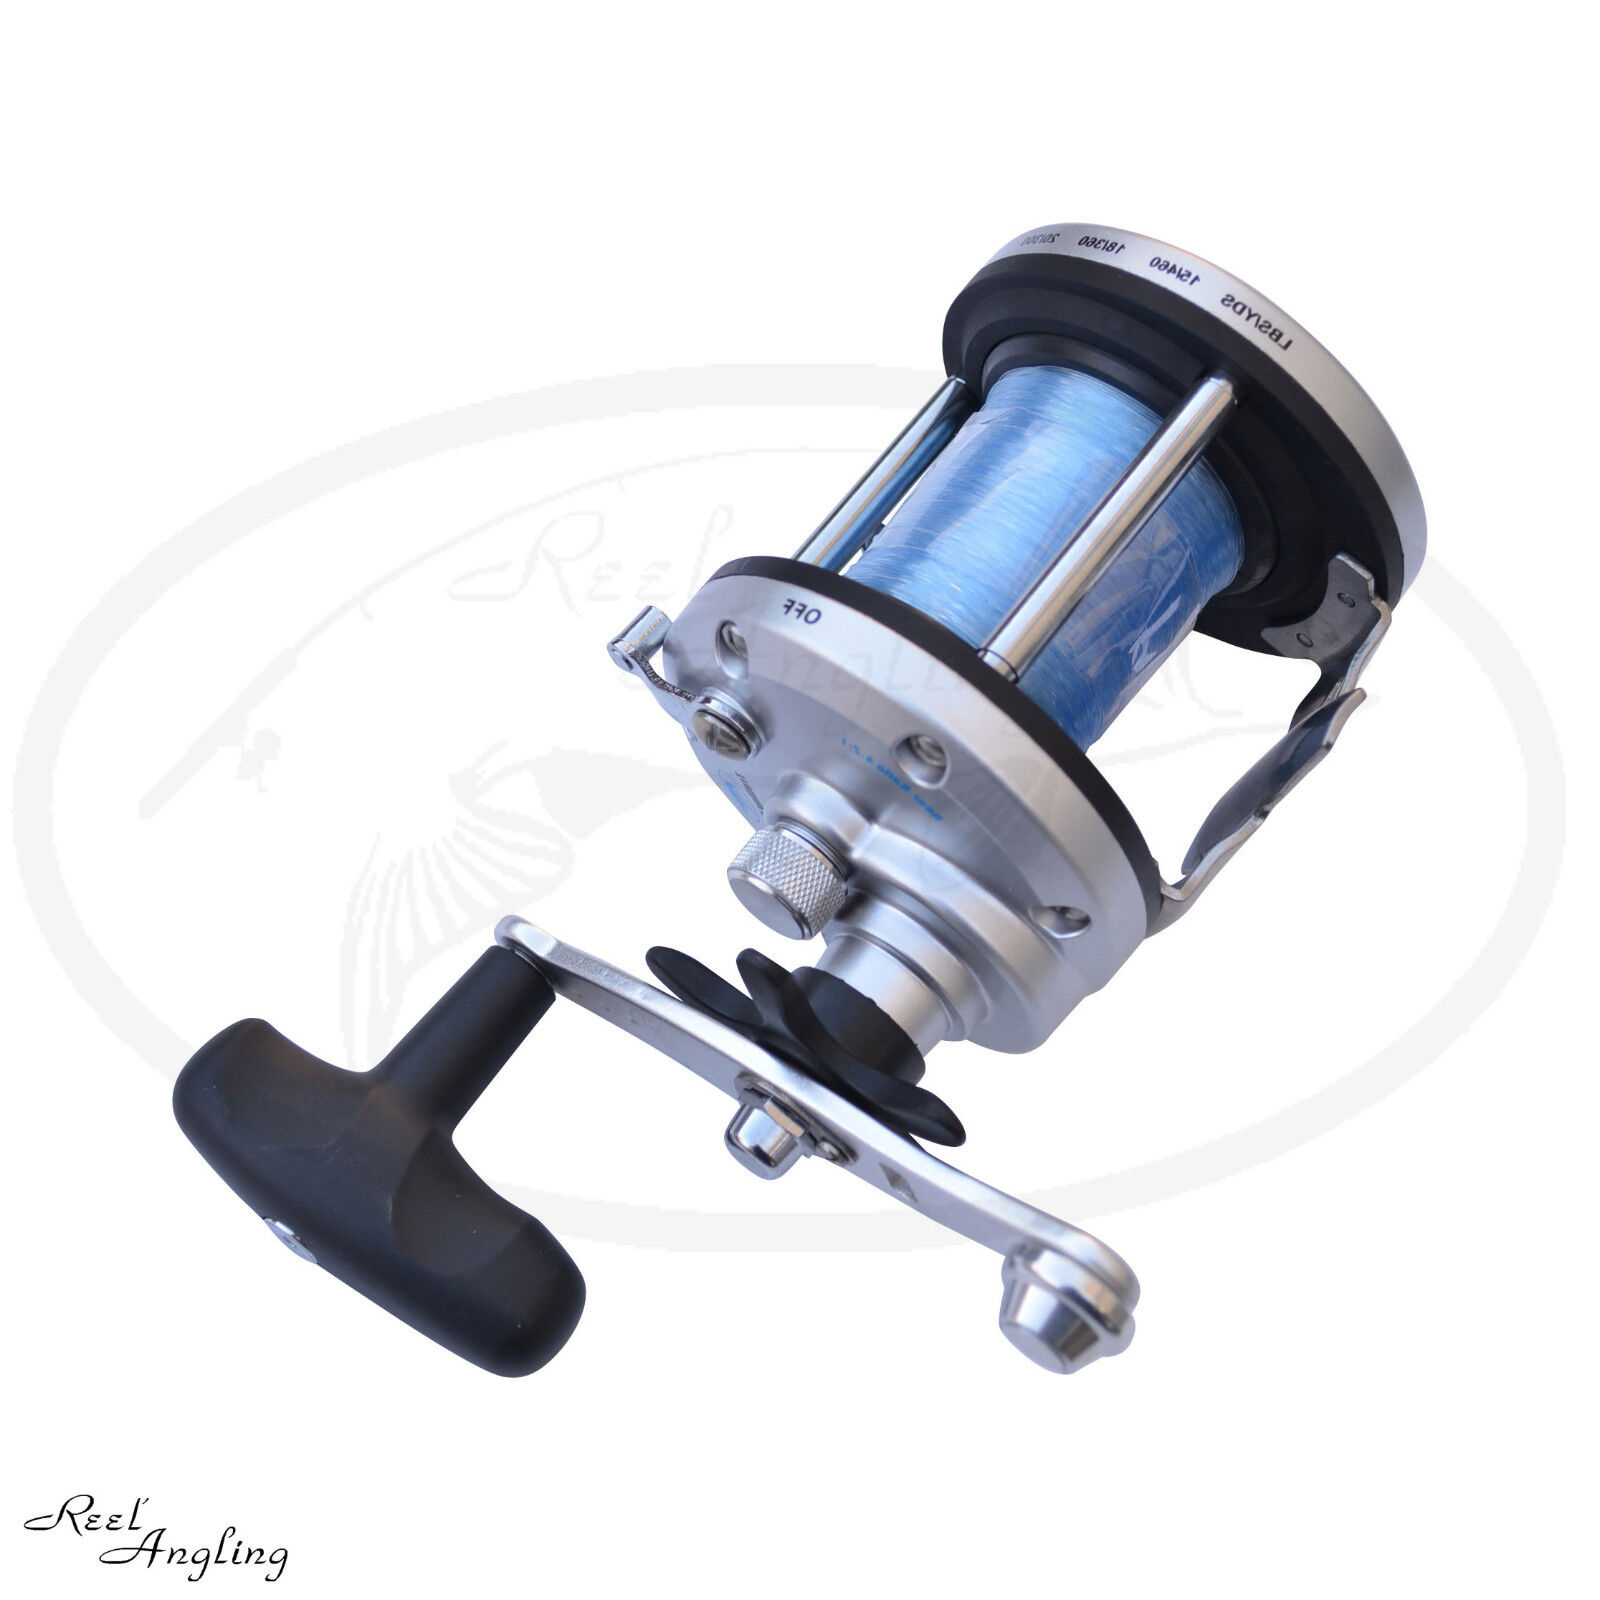 Lineaeffe JD 500 JD 300 Multiplier Sea Boat Fishing Reel Comes With Line Angling